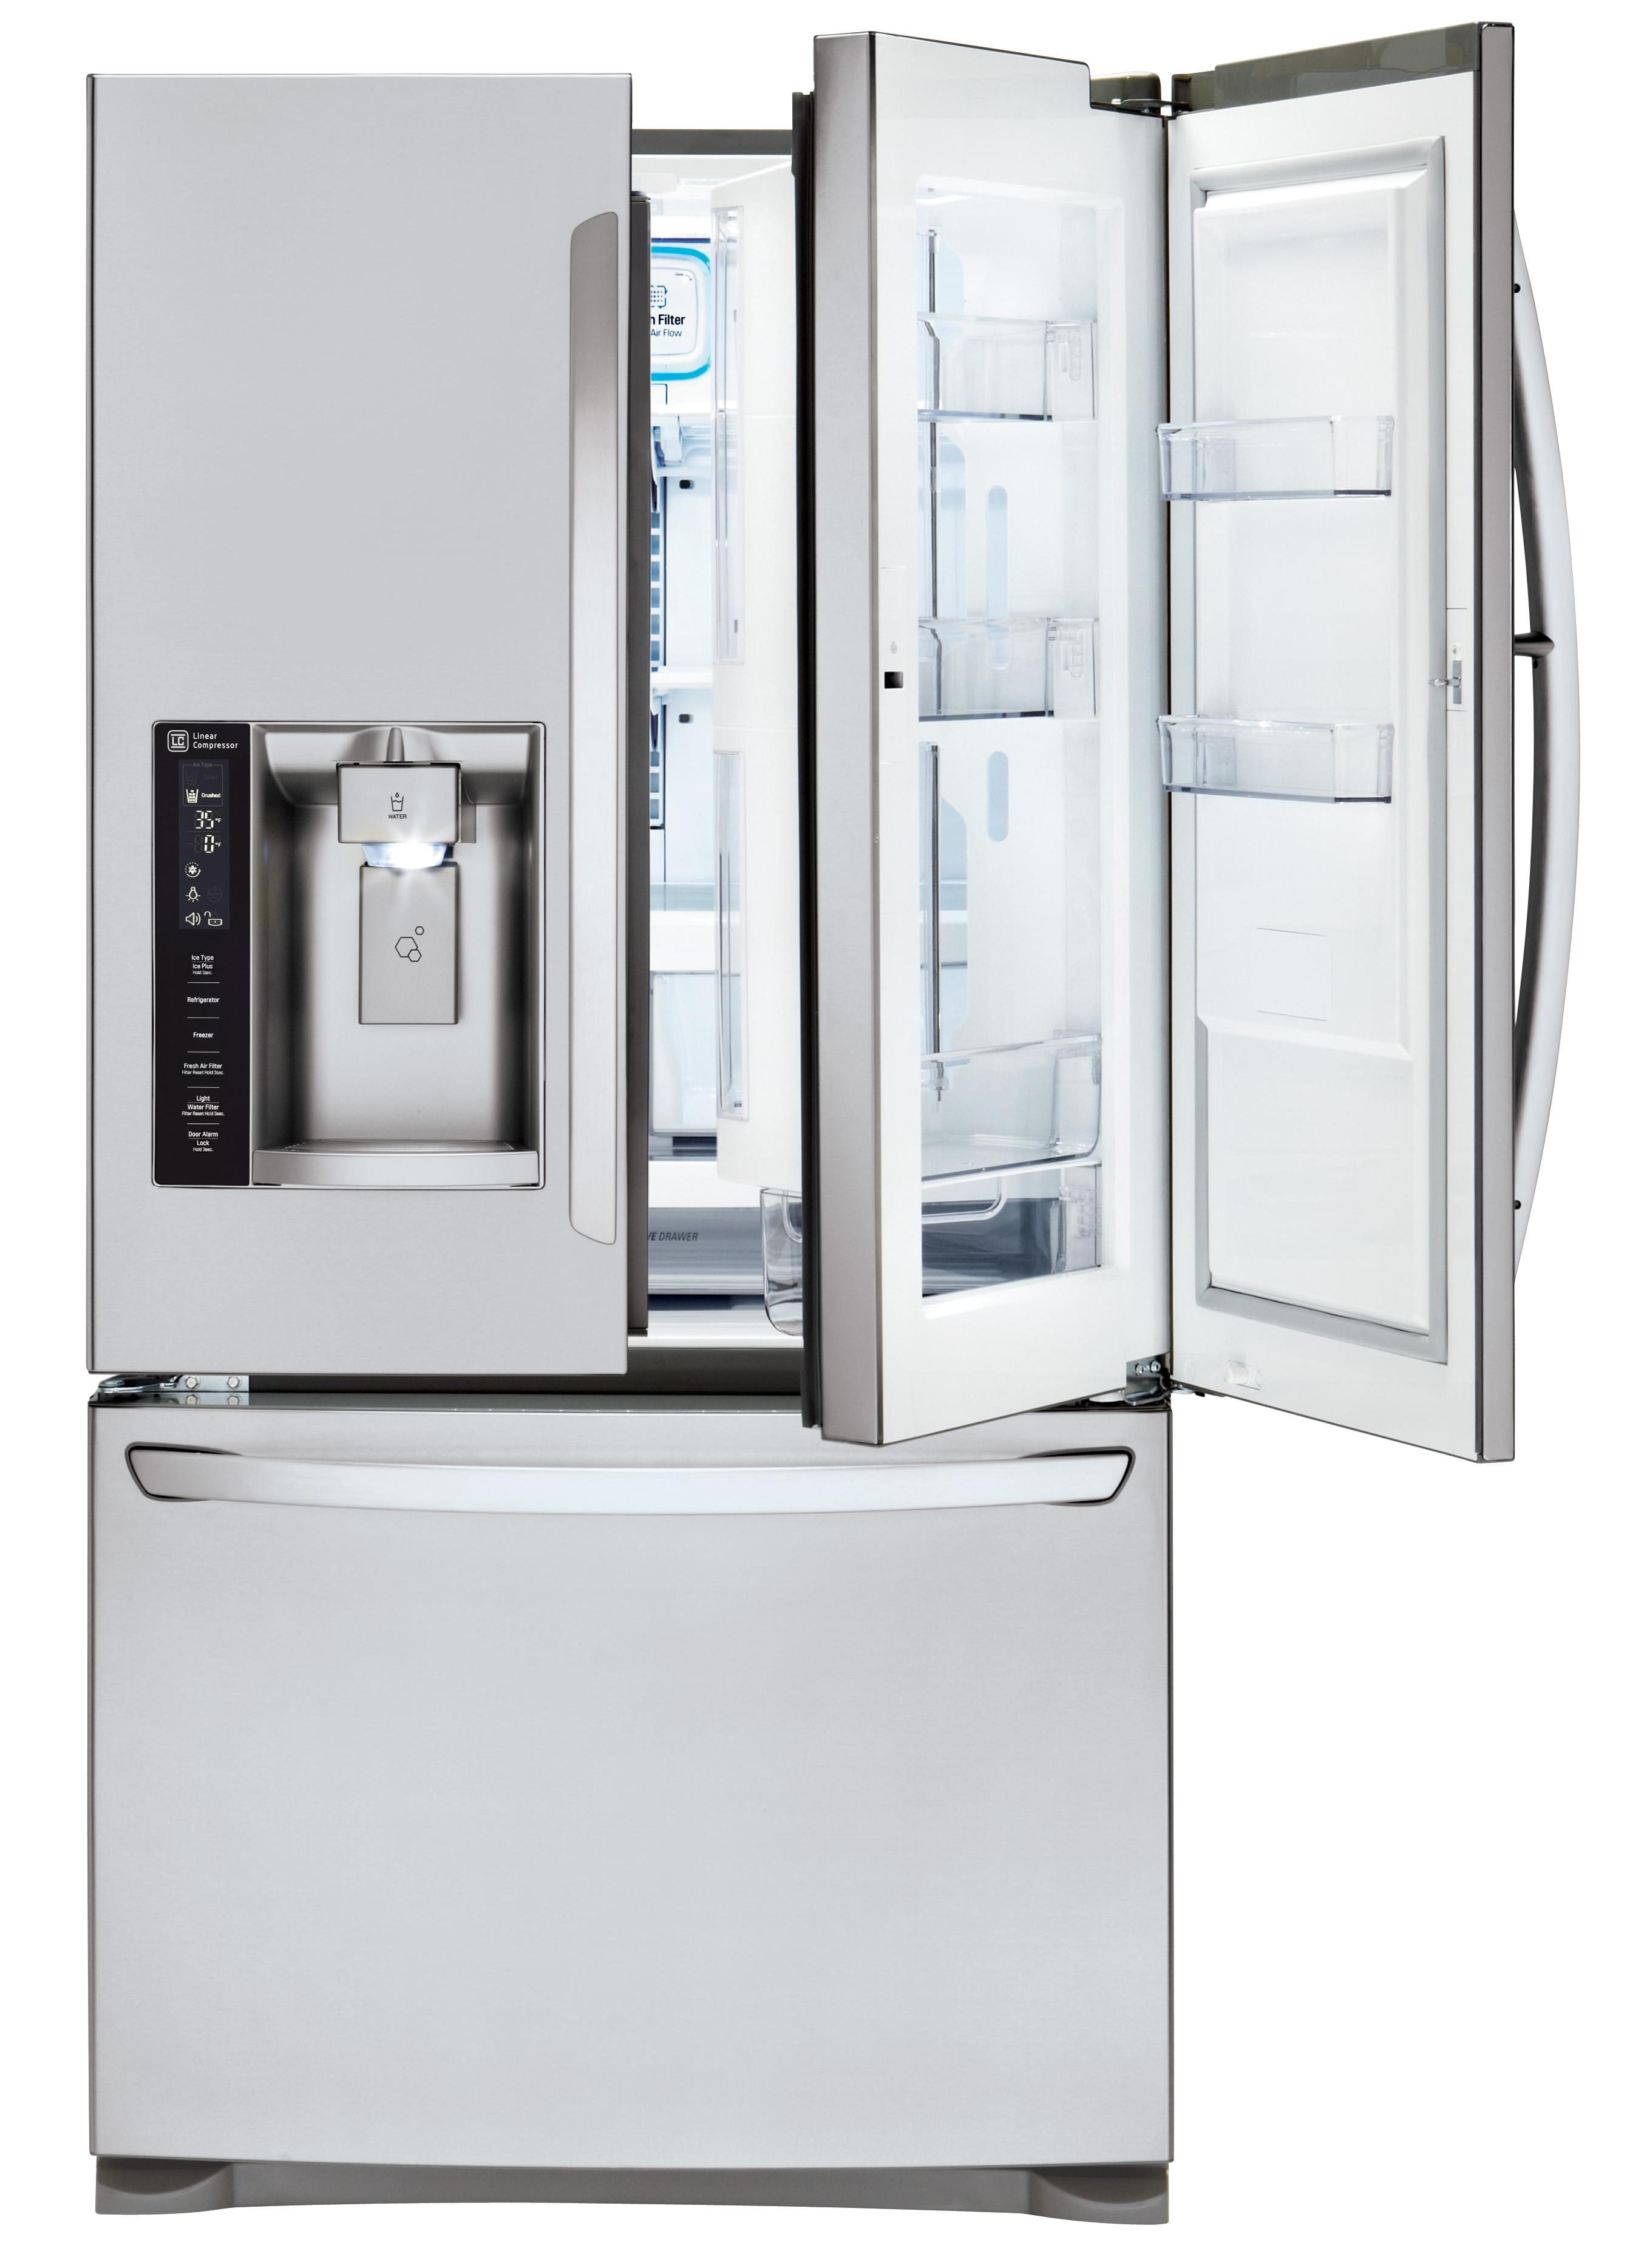 French Door Refrigerators 27 Cu. Ft. 3 Door French Door Fridge by LG Appliances at Westrich Furniture & Appliances